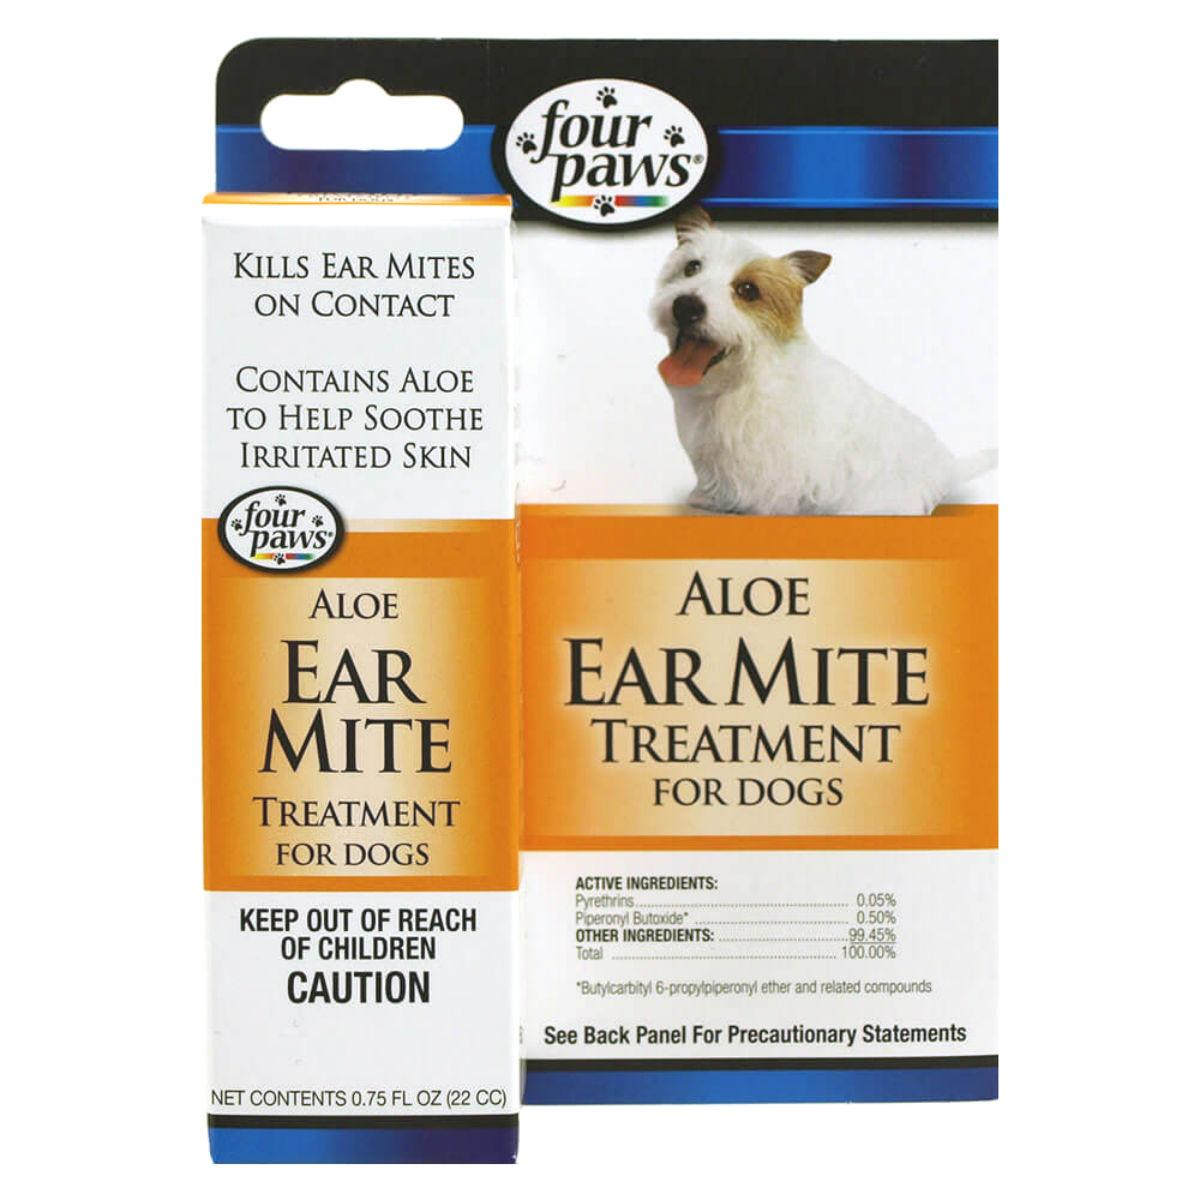 Four Paws Ear Mite Treatment for Dogs